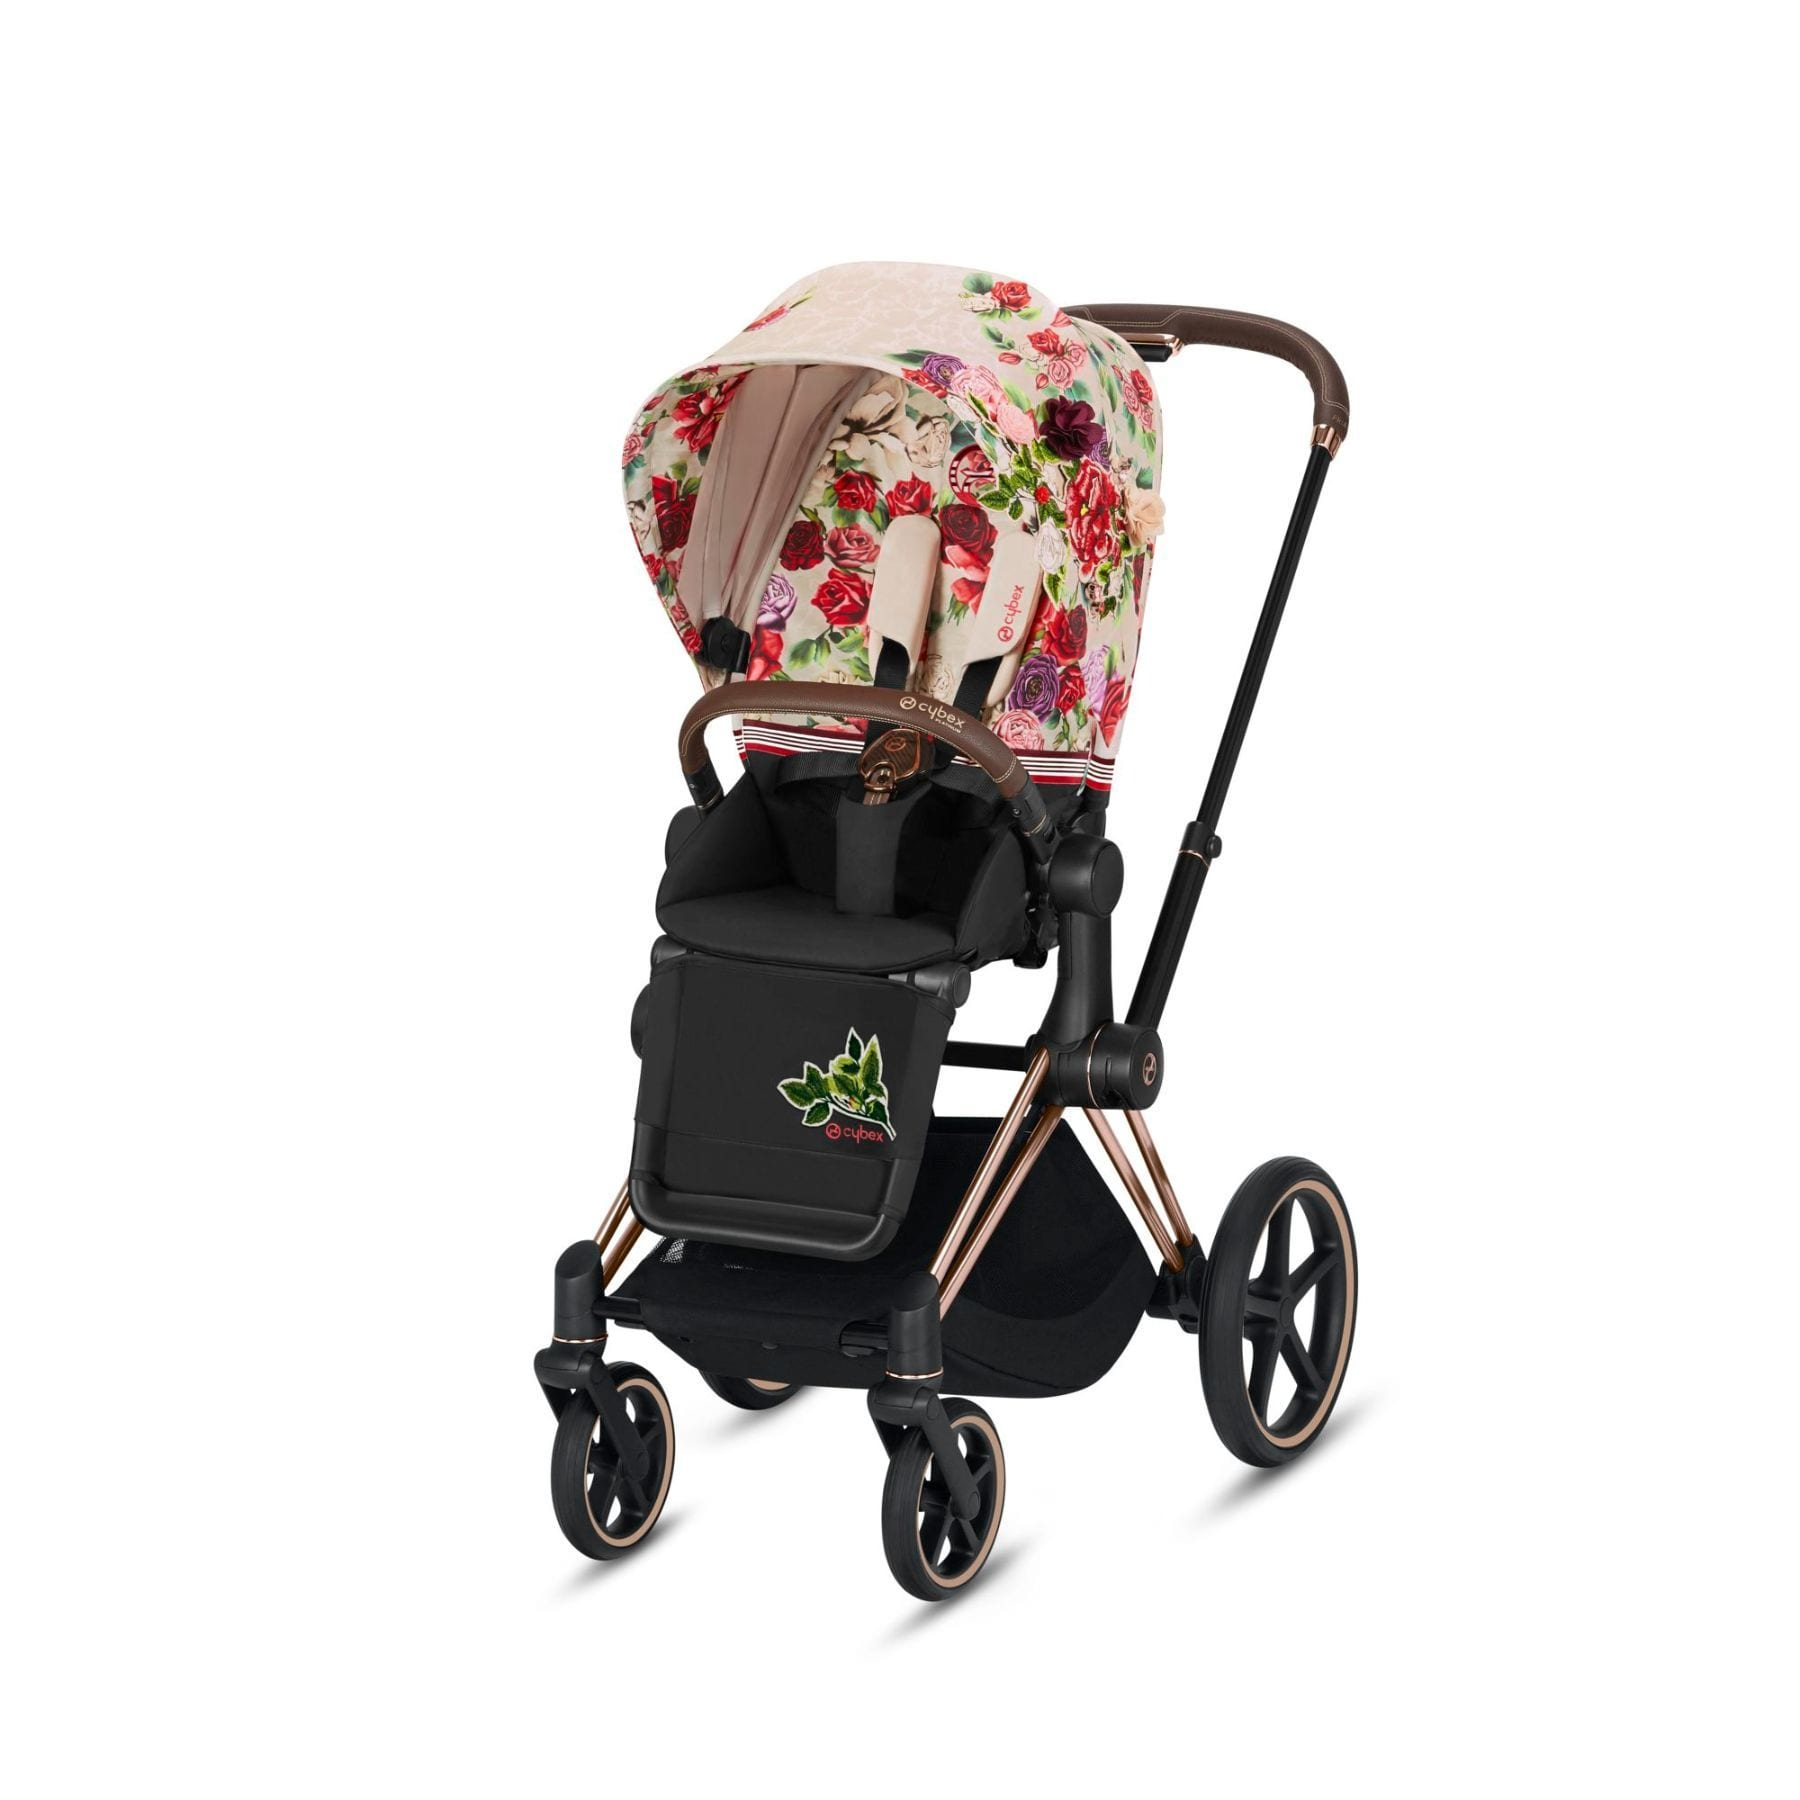 Cybex Priam Spring Blossom Light - Rose Gold